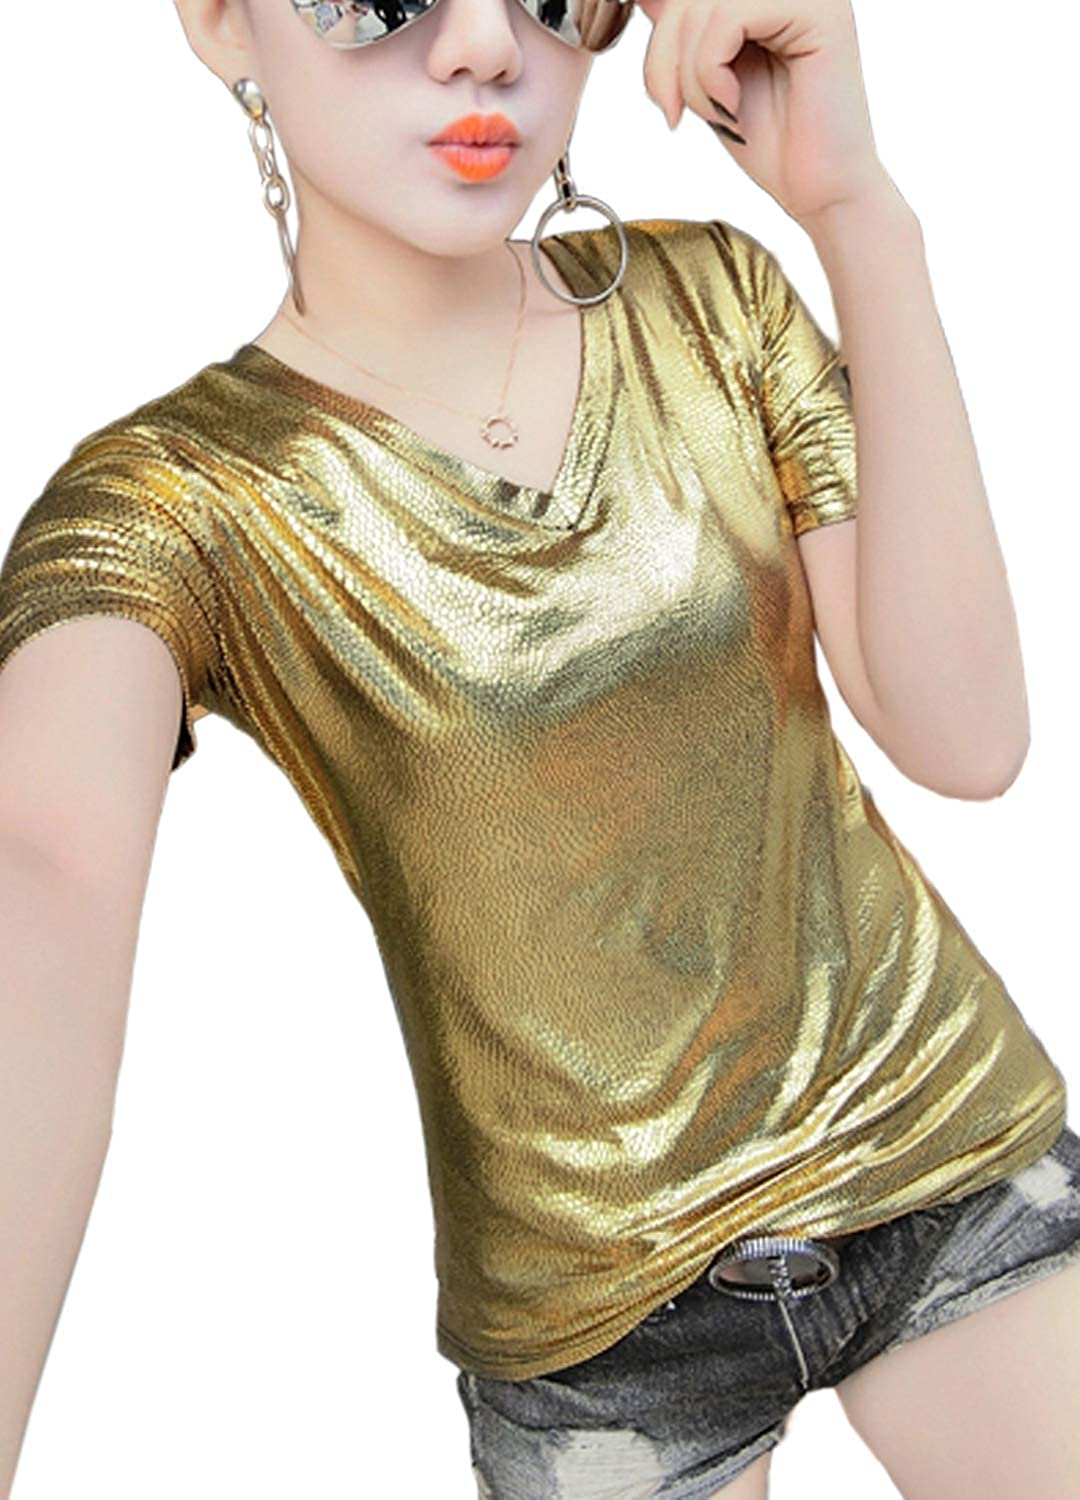 Hoohu Women's Fashion Glitter Short Sleeve VNeck Loose Fit 3XL 2XL XL L TShirt Tank Top for Casual Club Party Dance